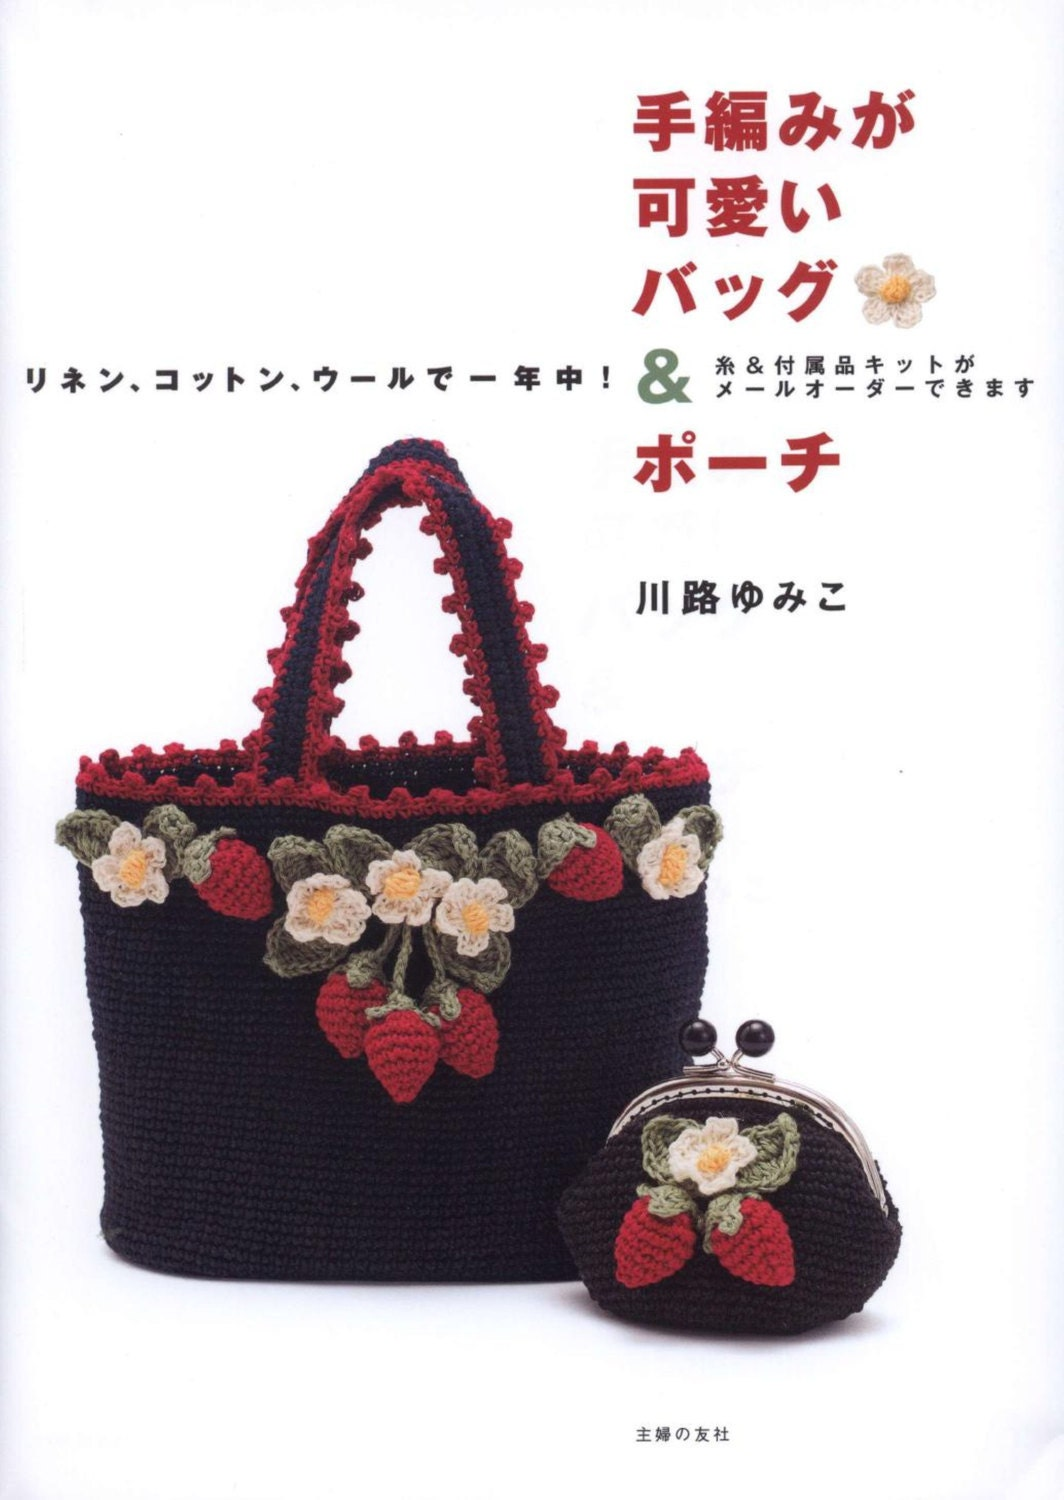 24 Crochet Bags Patterns Knit Bag Patterns Crochet Etsy